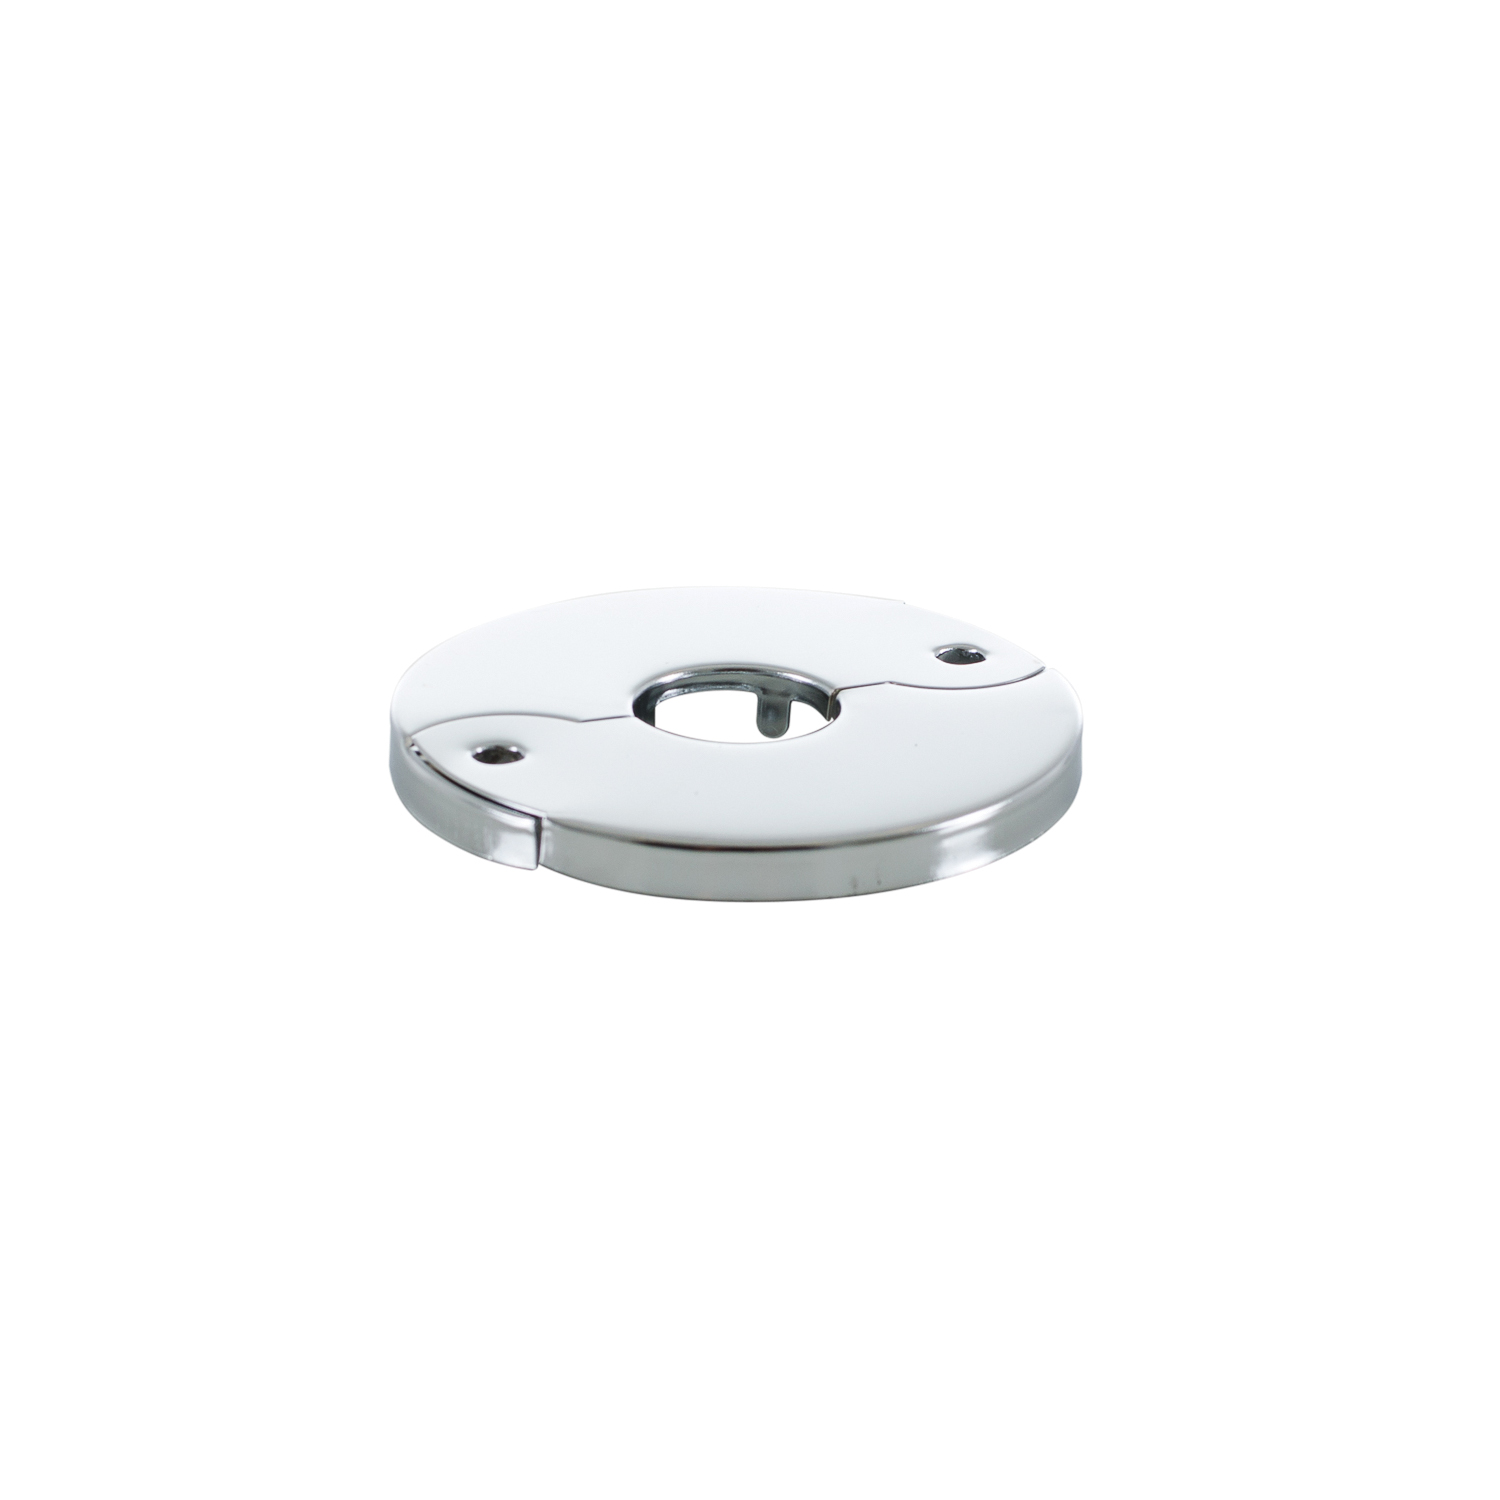 PASCO Sure Grip 2811 Economy Floor and Ceiling Plate Without Springs, 1/2 in IPS Thread, Steel, Polished Chrome